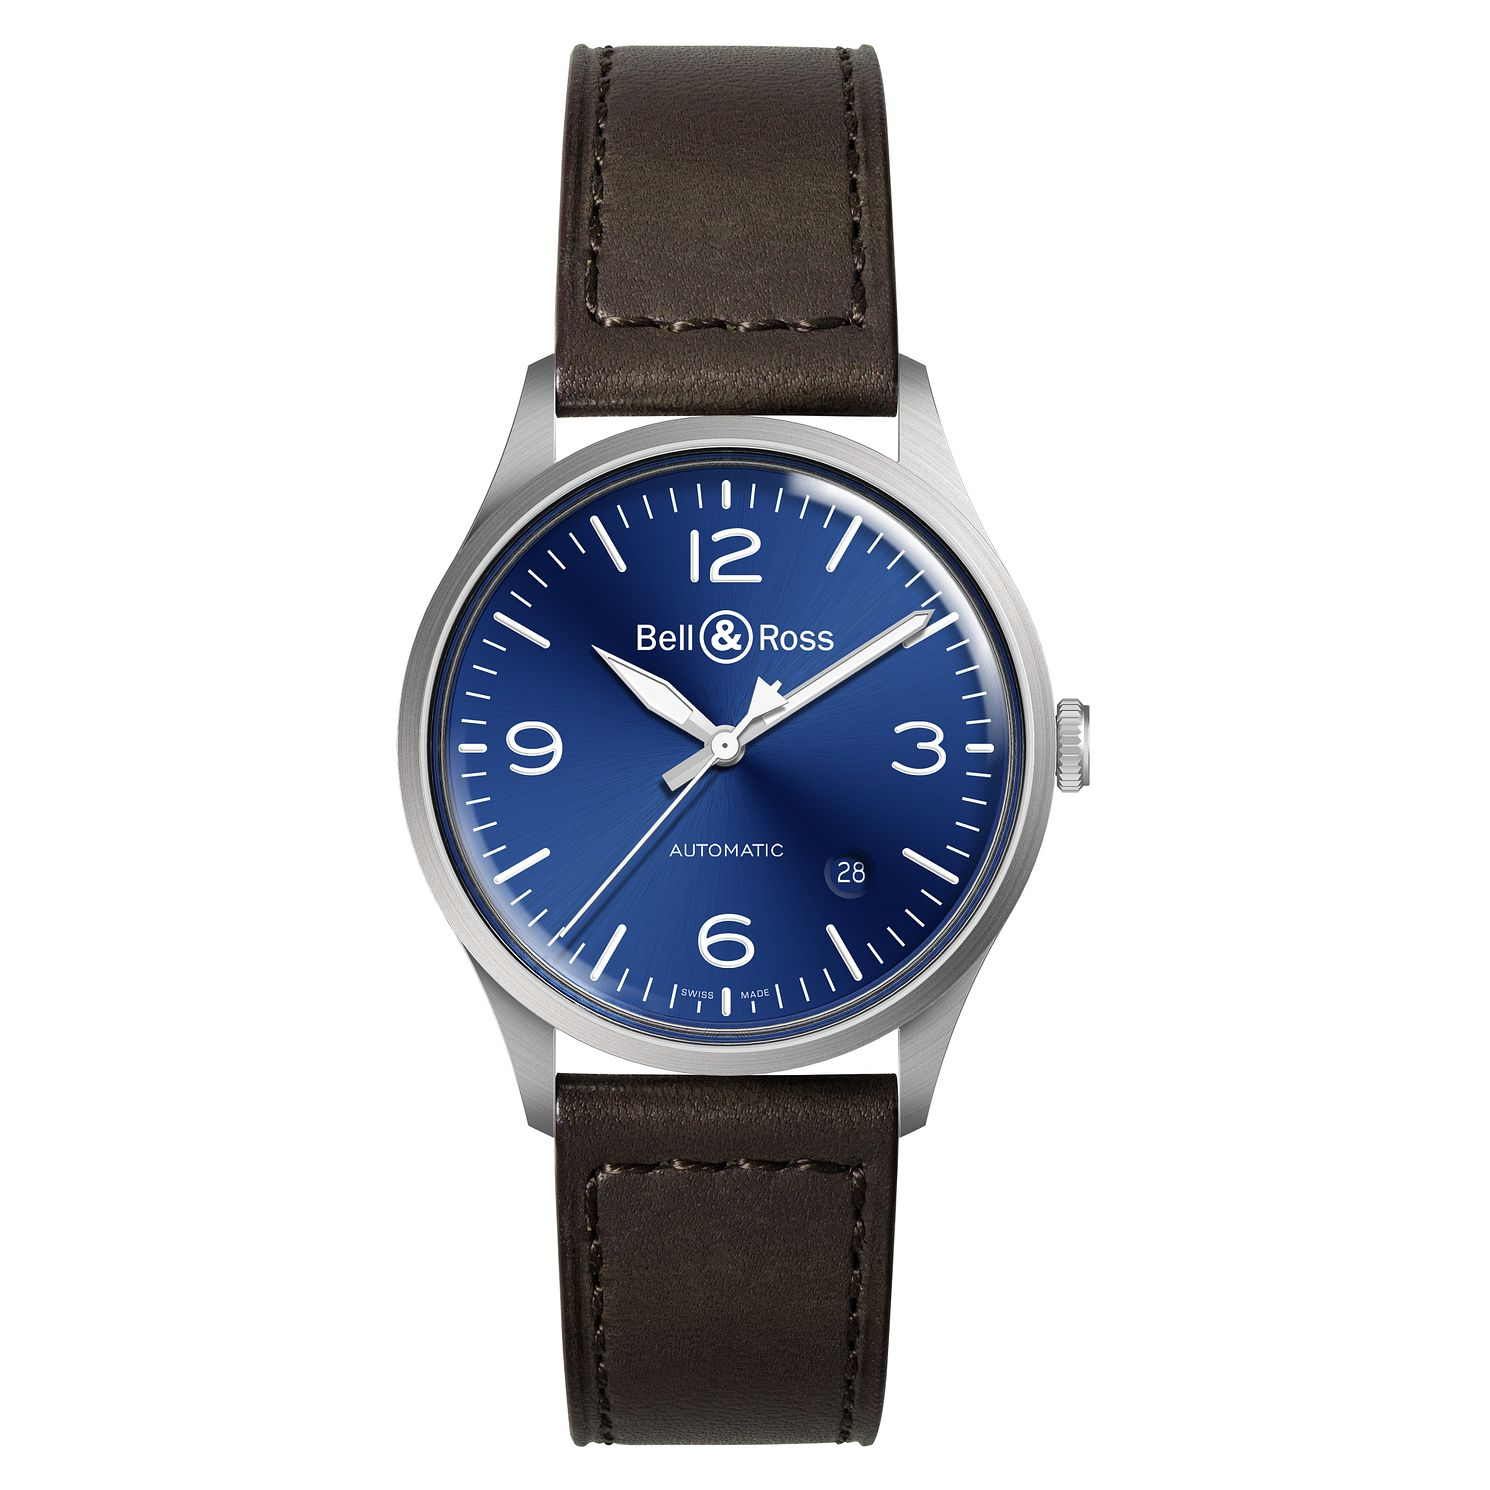 Bell & Ross Blue Steel Brown Leather Strap Watch - Product number 2468301